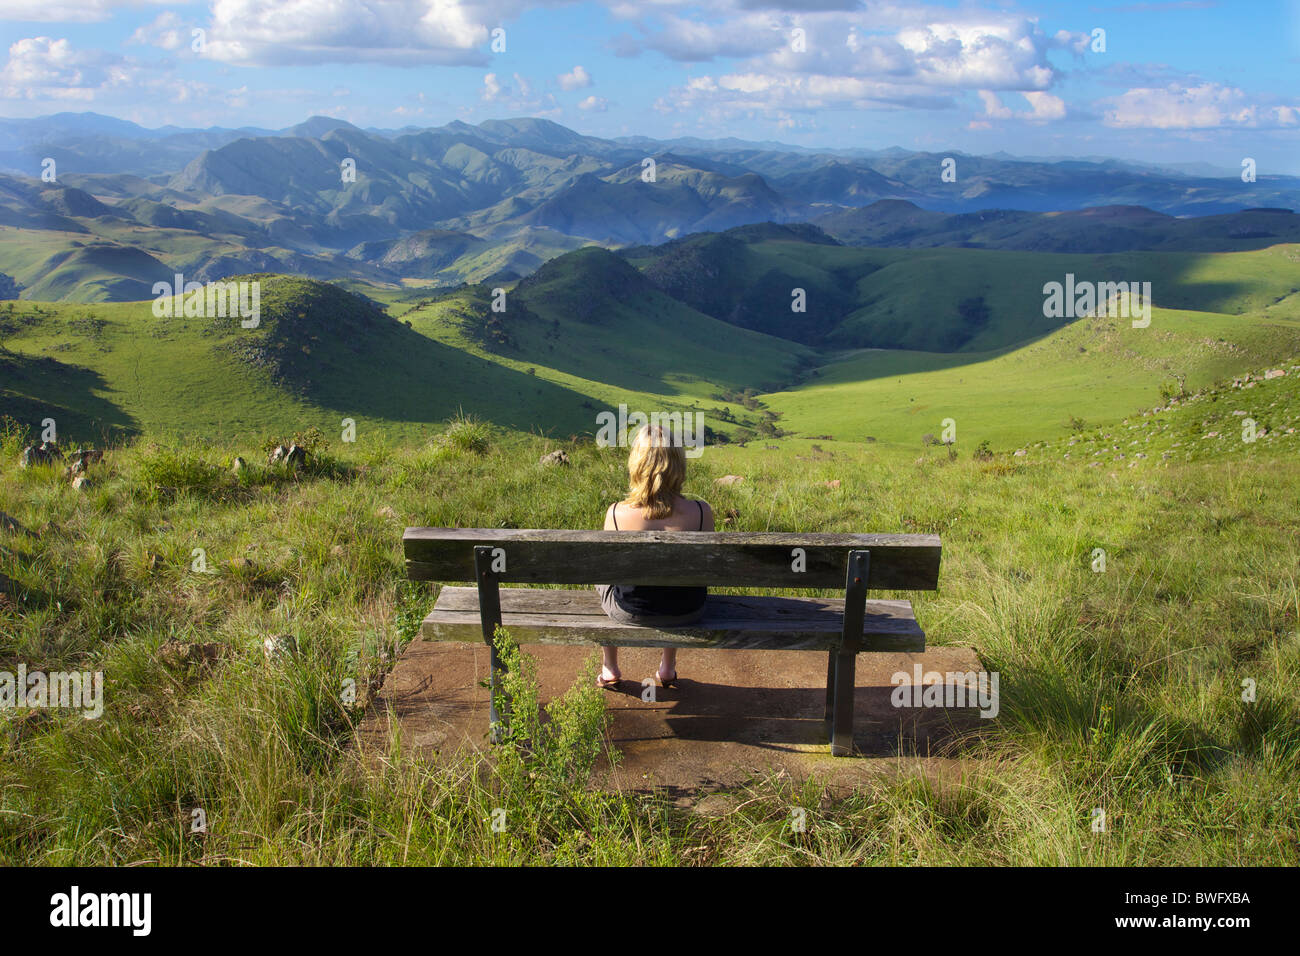 Woman looking at view, Malolotja Nature Reserve, Swaziland - Stock Image